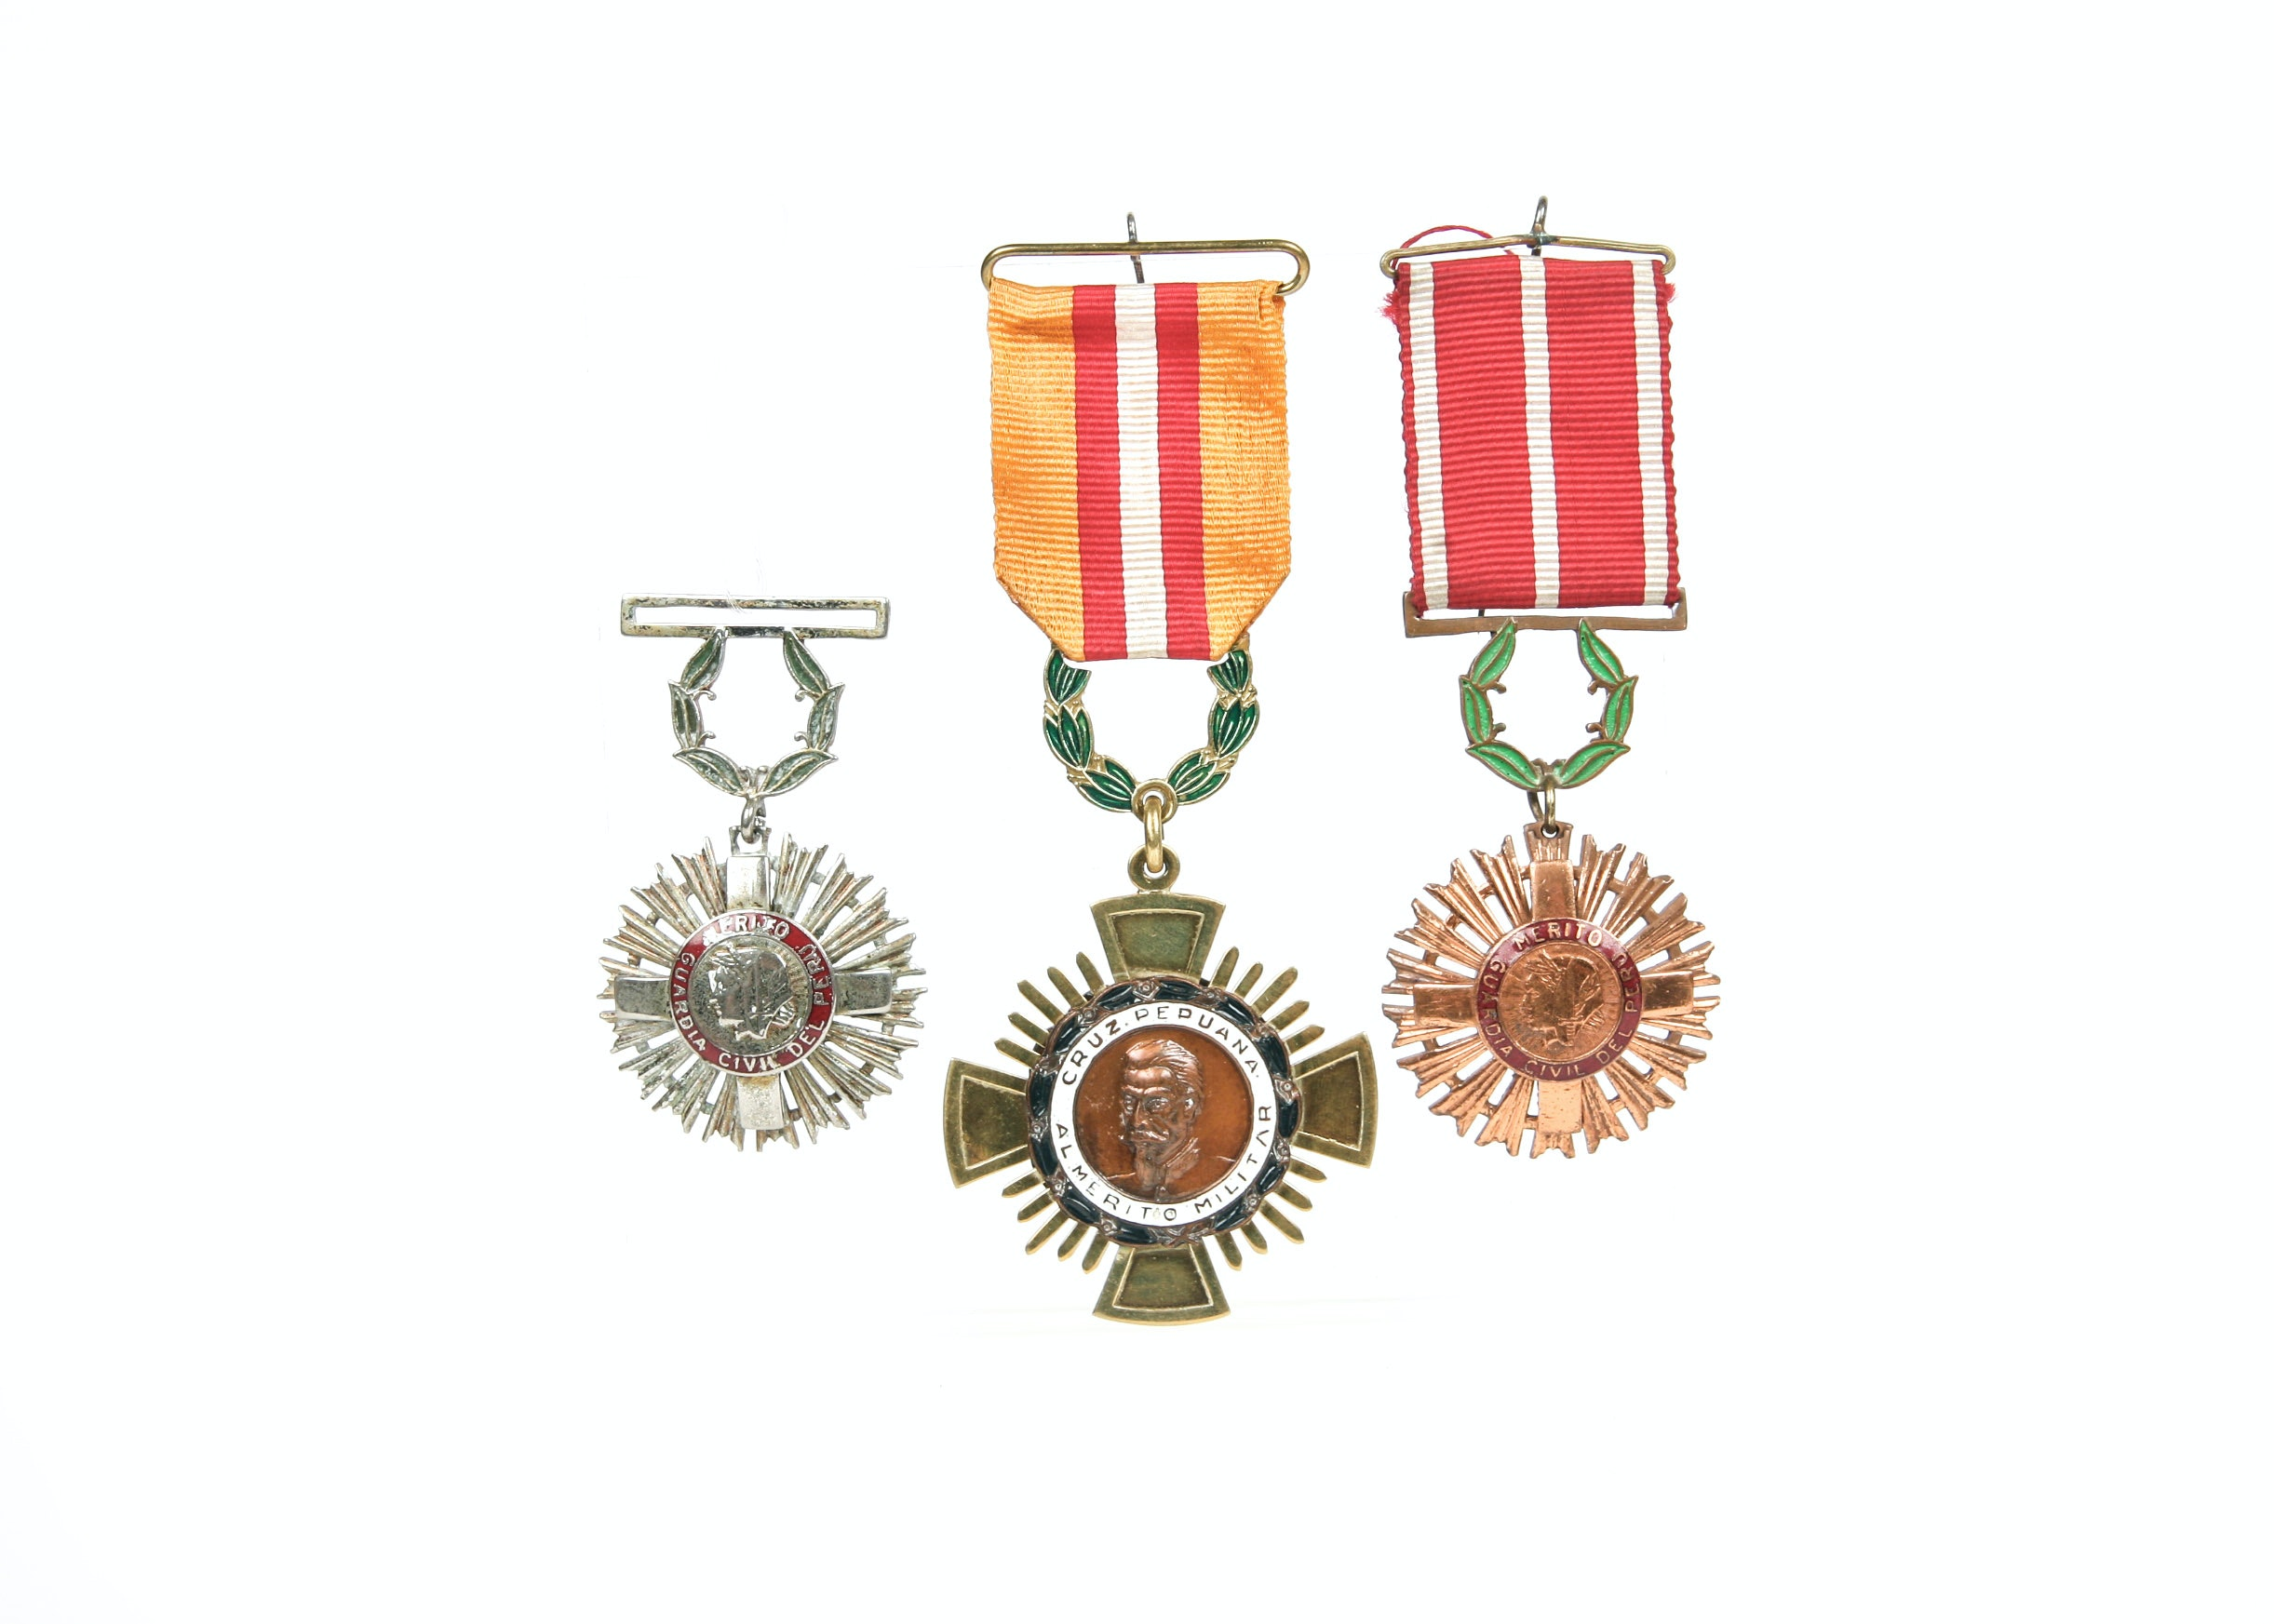 Peruvian Cross of Military Merit with two Civil Guard Merit Medals